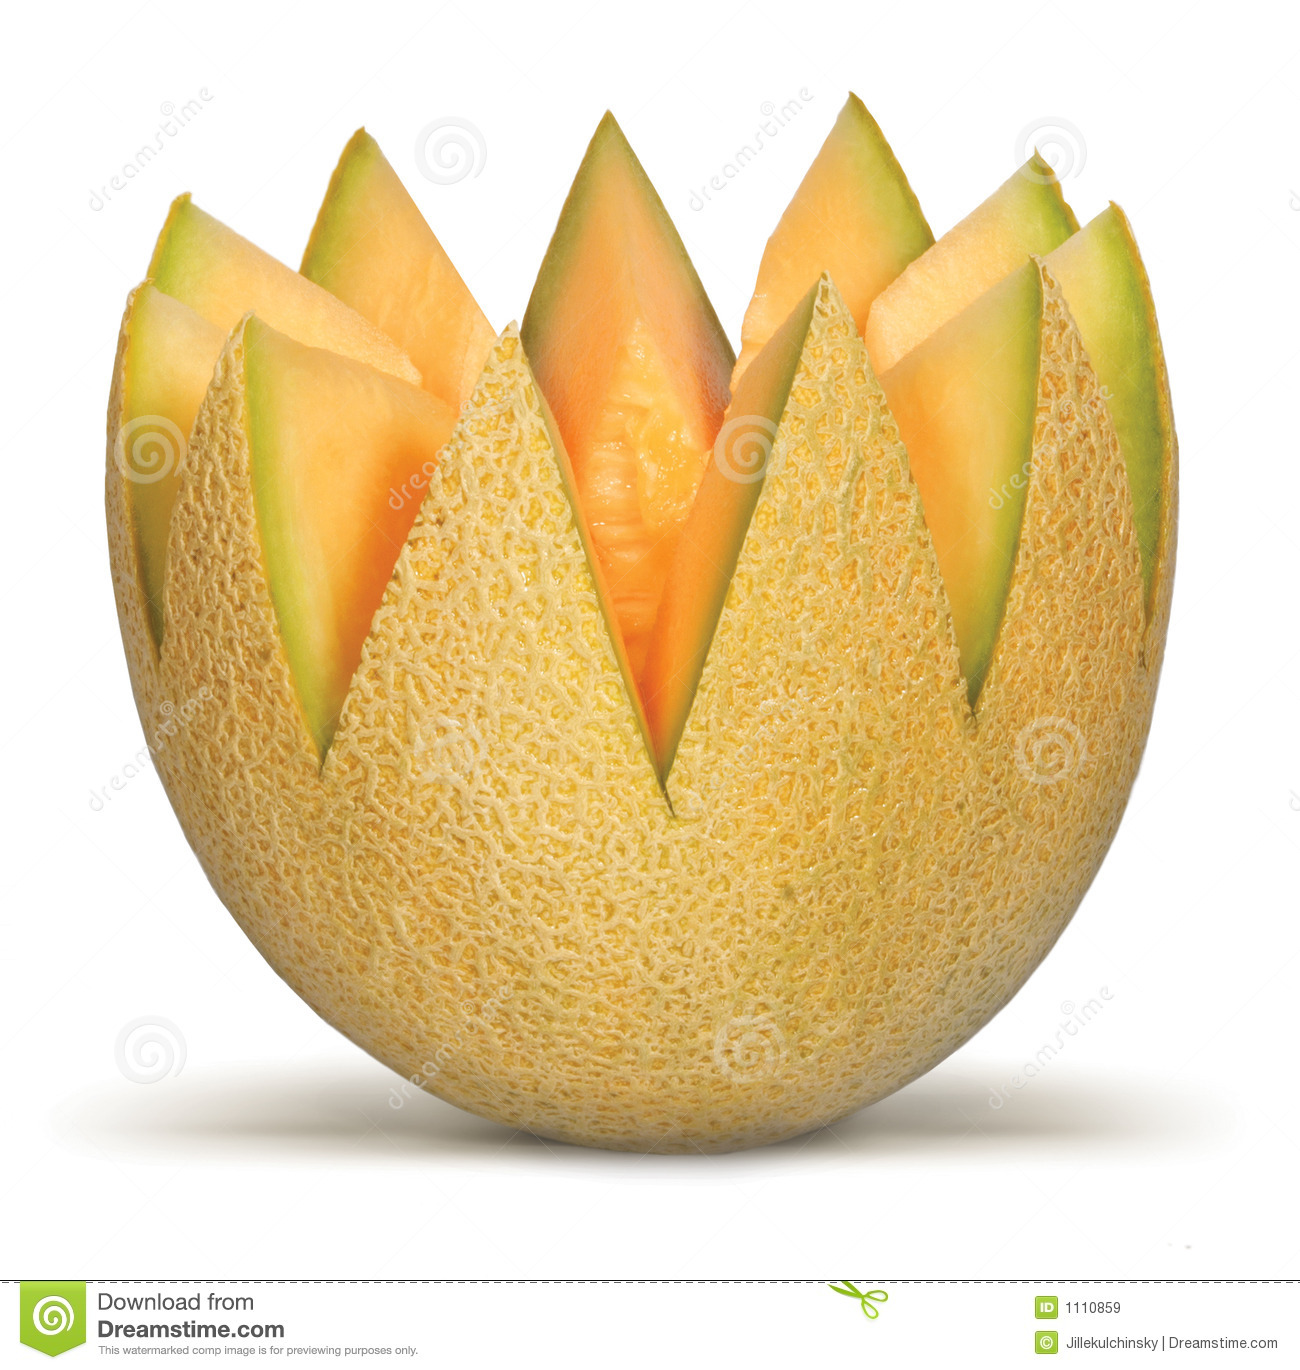 Cantaloupe Stock Image Image Of Crown Lean Cantaloupe 1110859 The record label created in 2001 by the founders of new york's legendary bang. dreamstime com